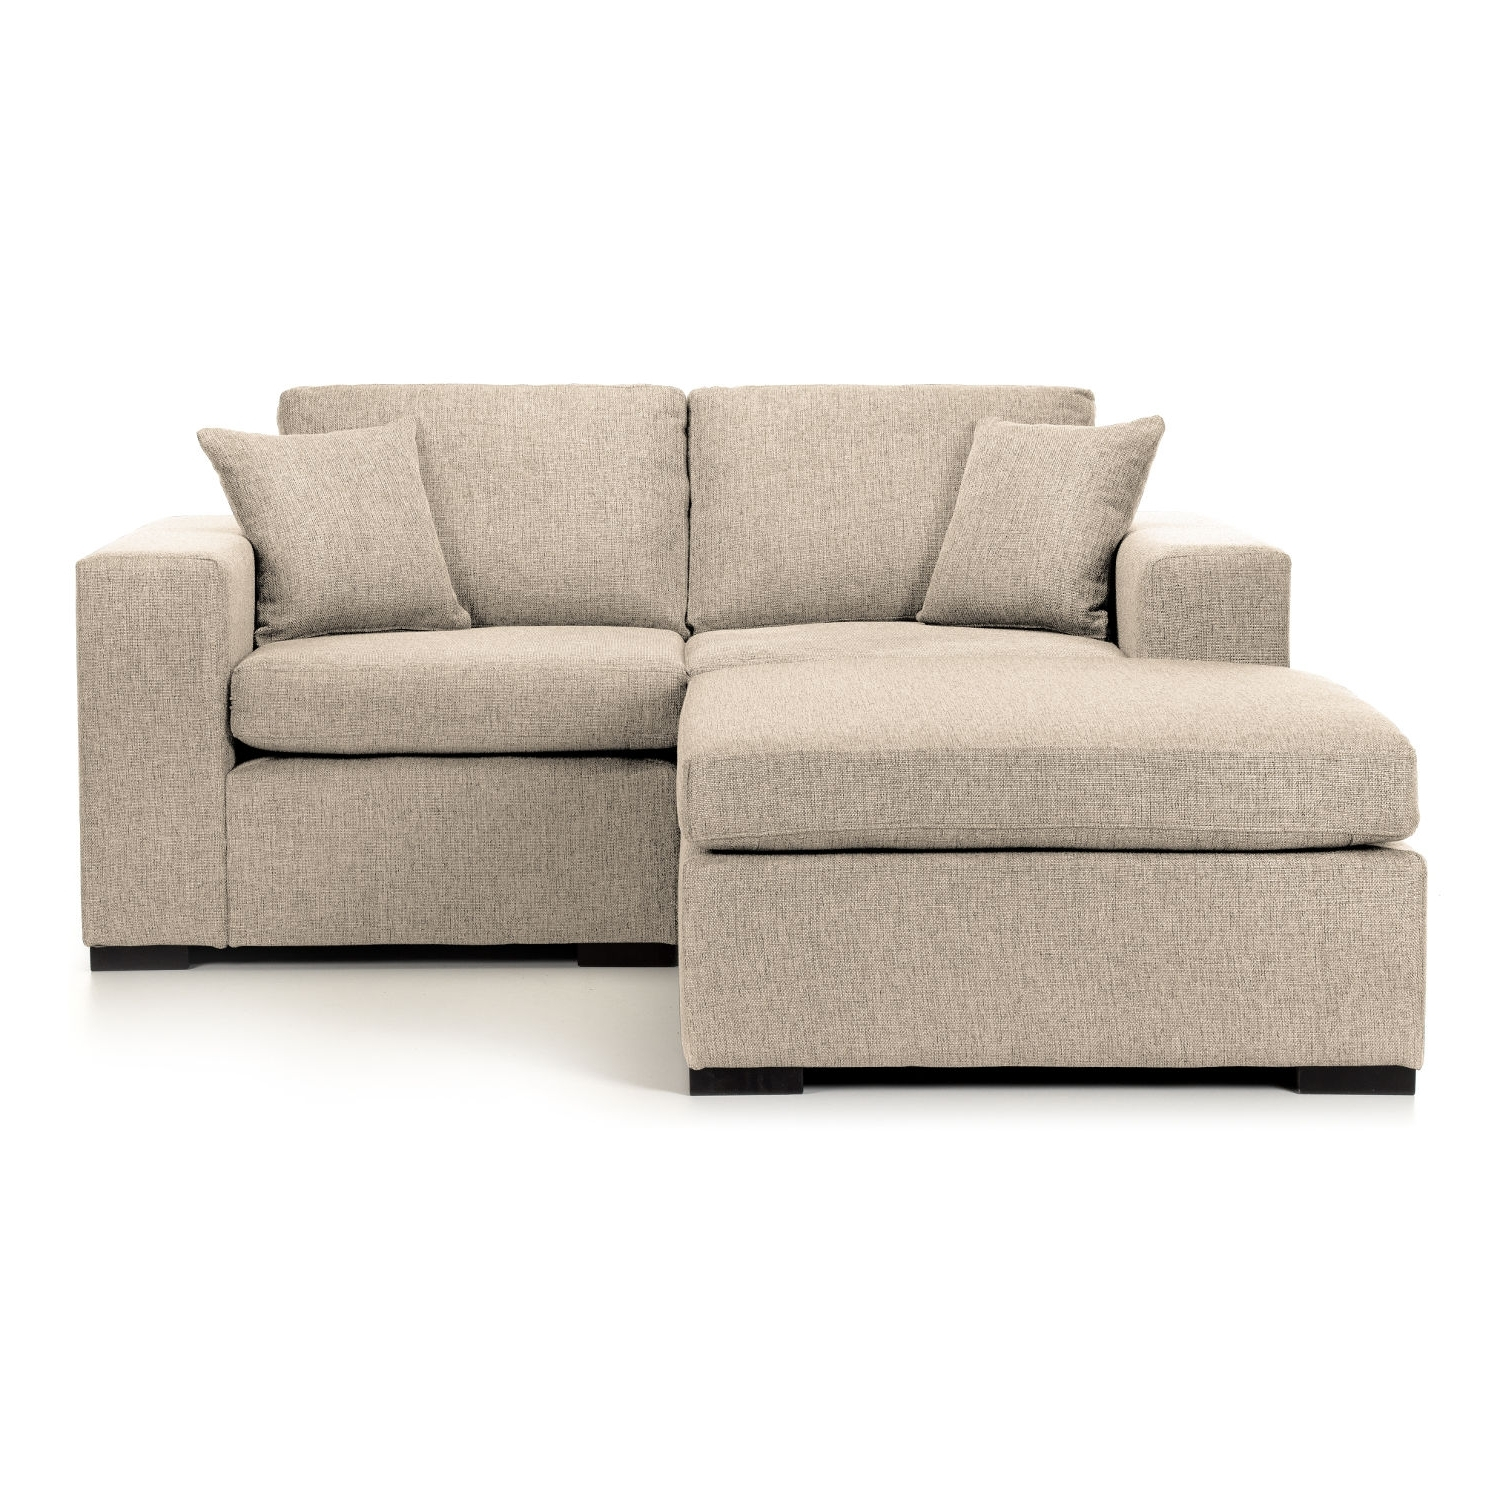 Lola Small Modular Corner Chaise Sofa – Next Day Delivery Lola Within Current Small Chaise Sofas (View 4 of 15)